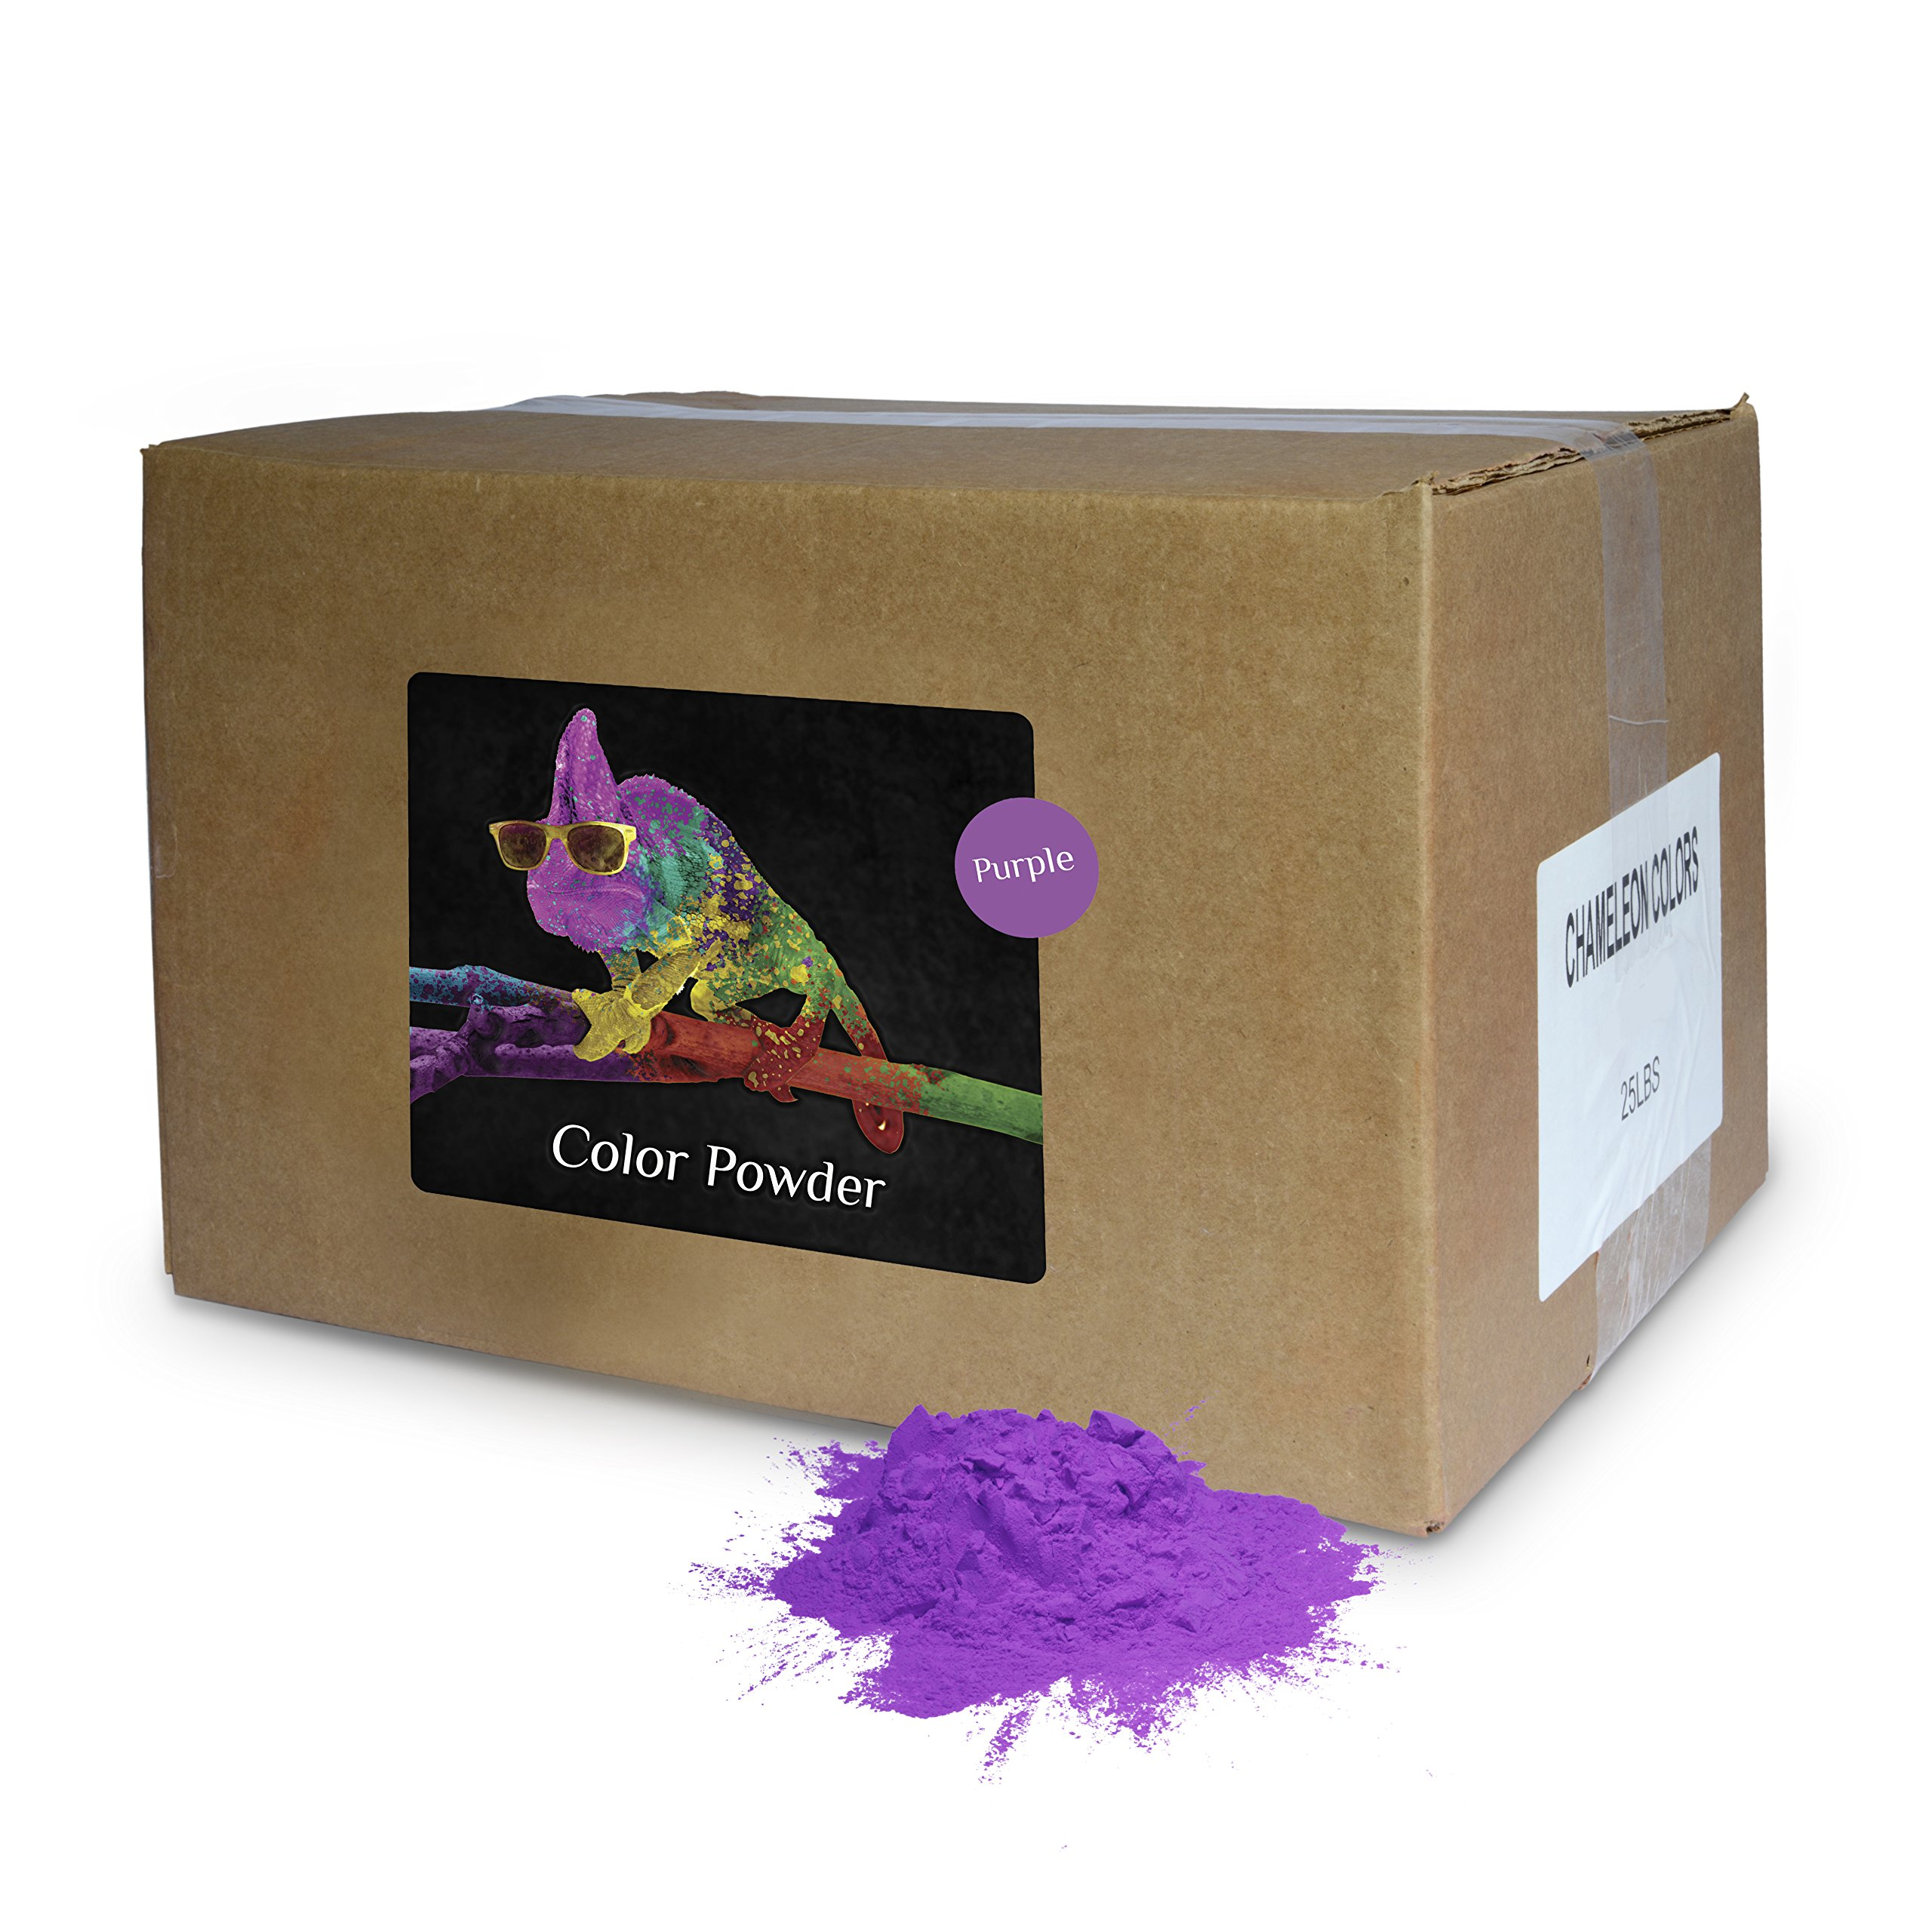 Holi Powder Bulk by Chameleon Colors - Purple - 25 lbs. Pure, Authentic Fun - Perfect for a Color Run, 5k, Festival, Party or Any Other Event You Want to Make Colorful.